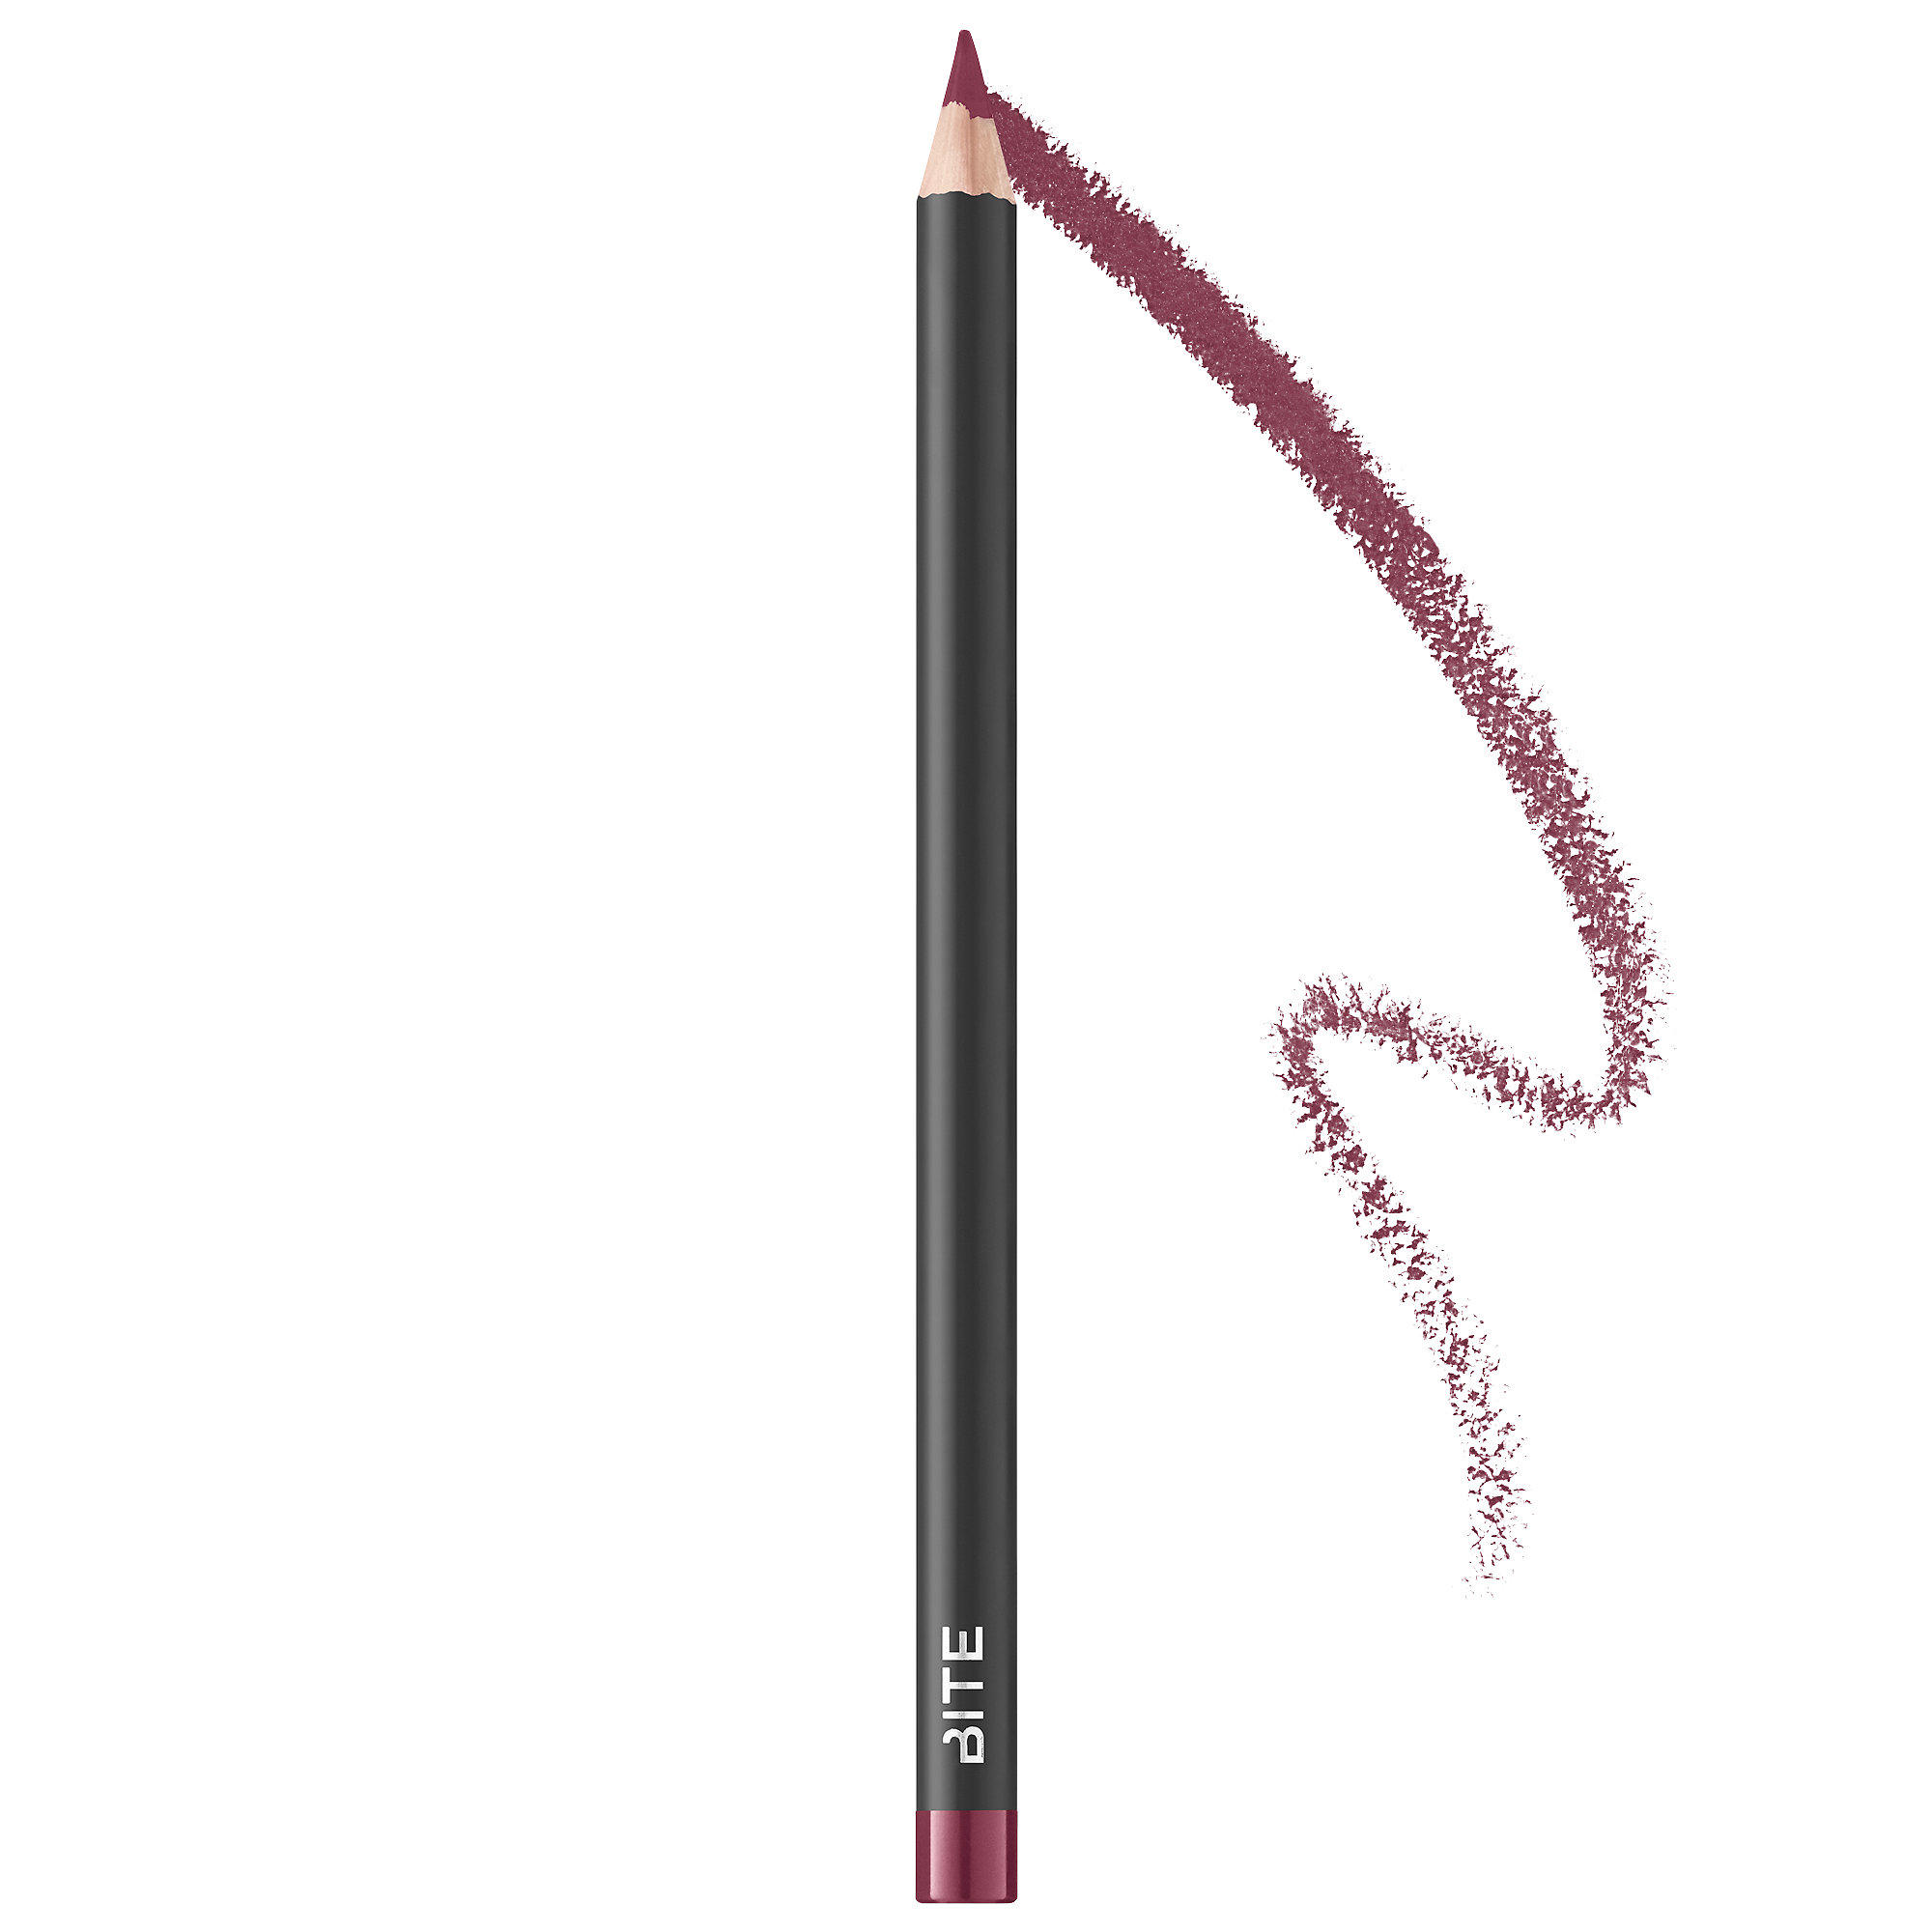 Bite Beauty The Lip Pencil Plum Rose 034